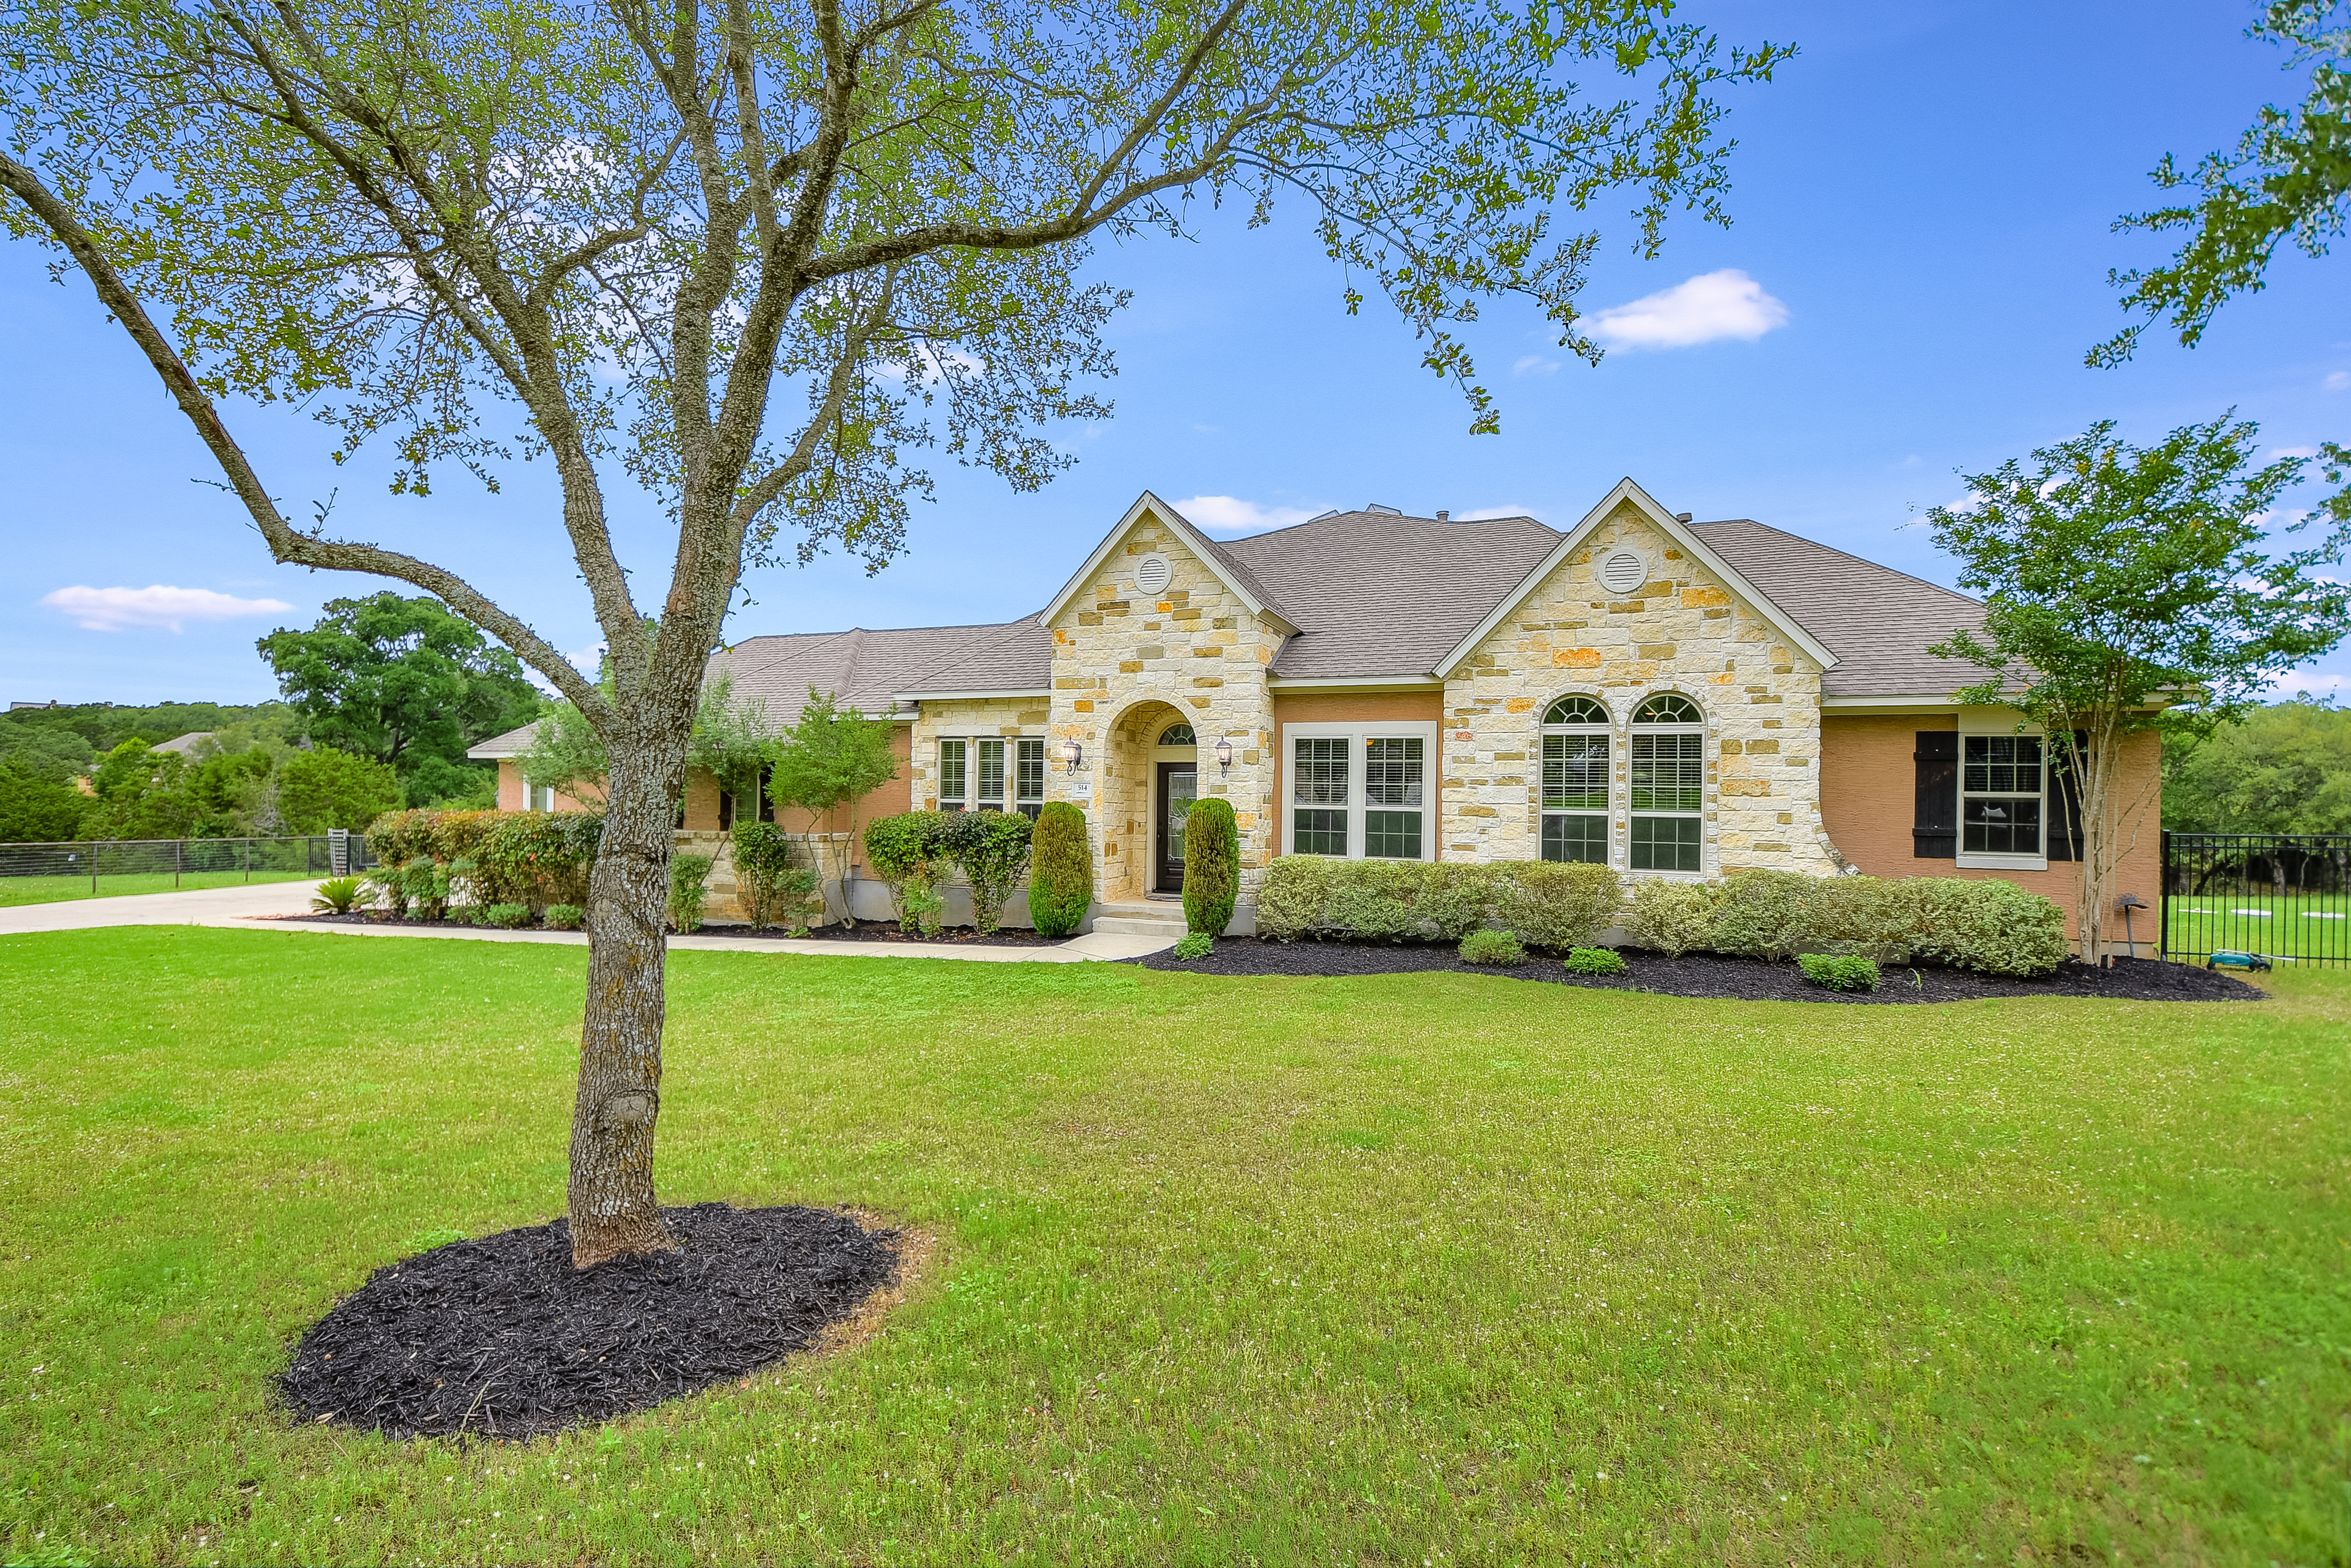 Single Family Home for sale in Panarama Place, New Braunfels, Texas ,78132